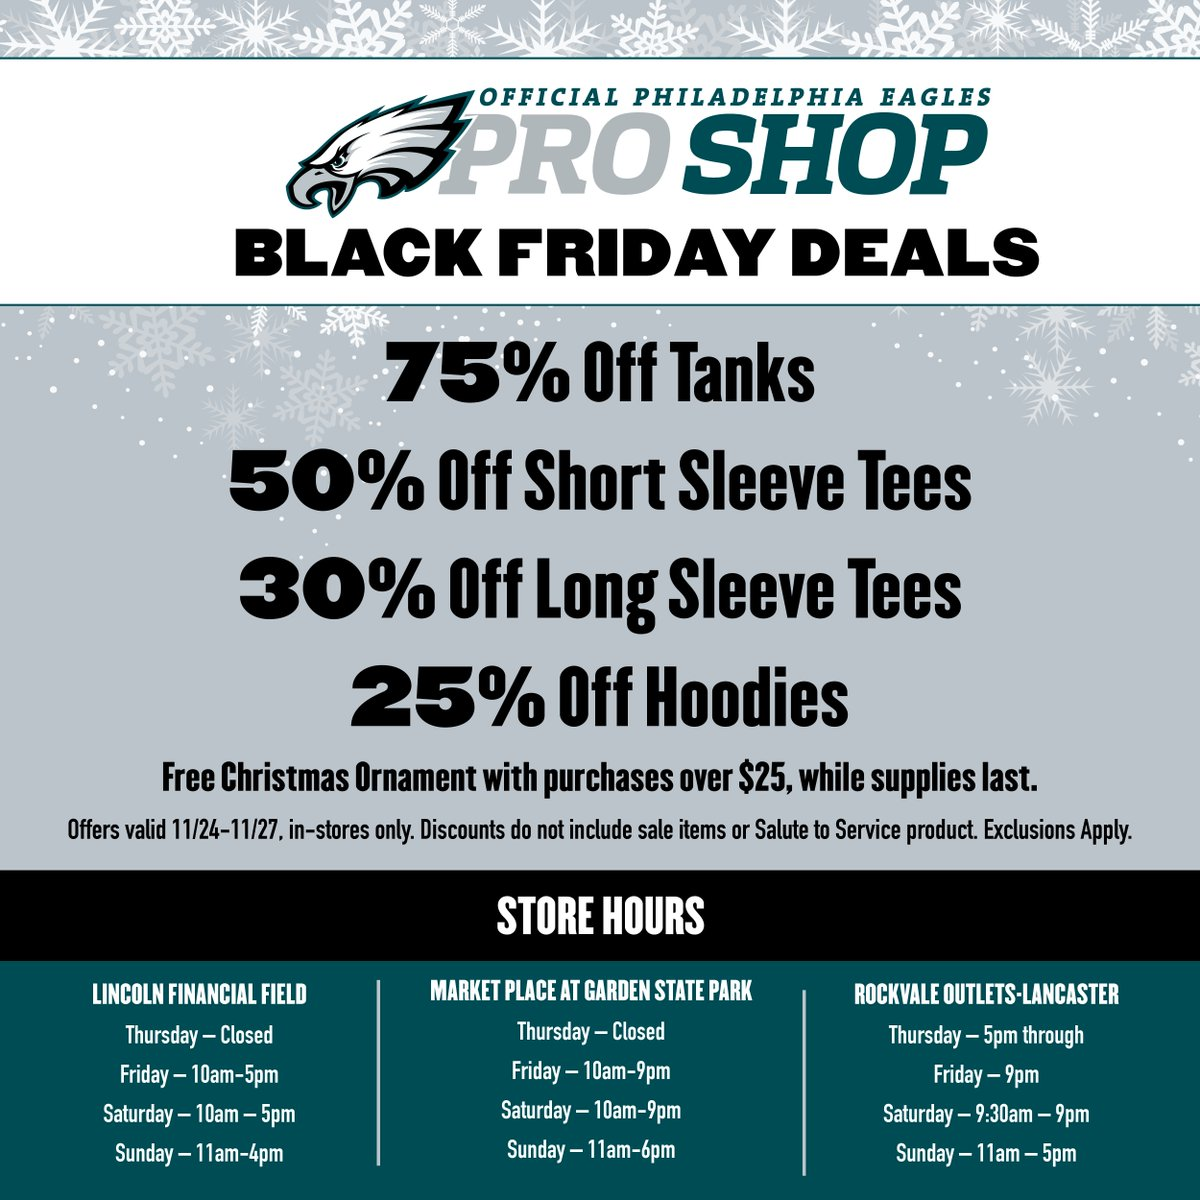 Eagles Pro Shop - Lancaster, Pennsylvania - Rockvale Outlets Store location, hours, contacts Eagles Pro Shop store or outlet store located in Lancaster, Pennsylvania - Rockvale Outlets location, address: 35 South Willowdale Drive, Lancaster, Pennsylvania - PA /5(1).